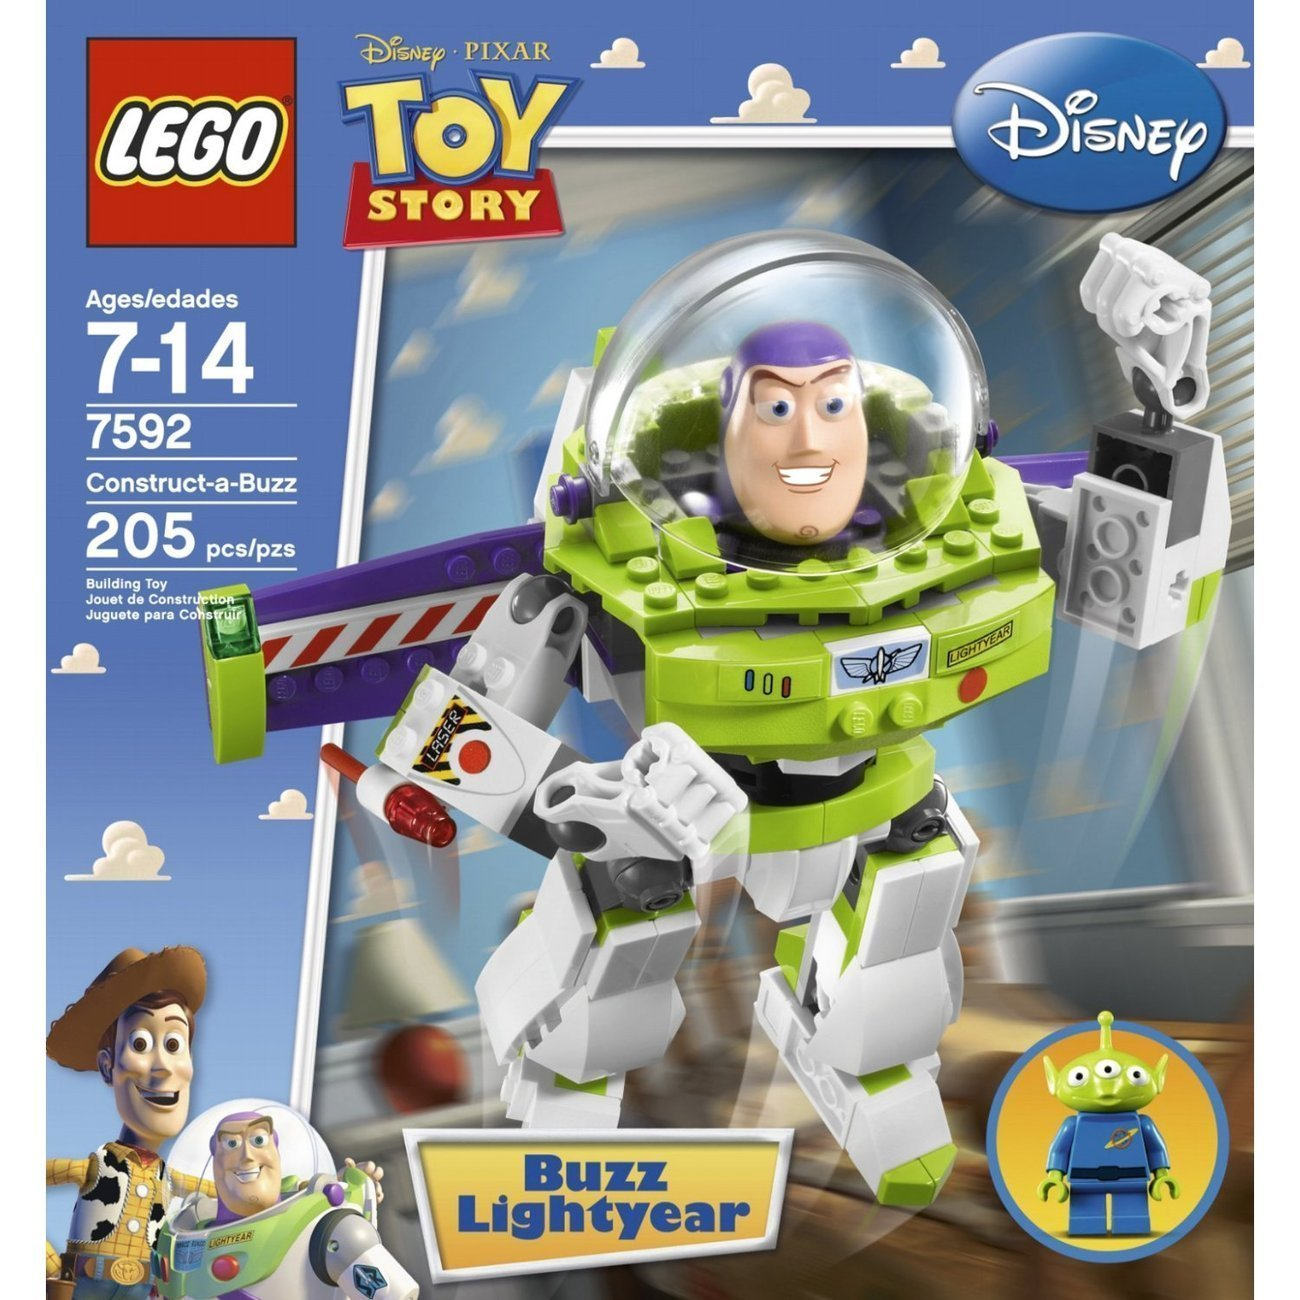 Buzz lightyear toy story lego set 7592 building toy disney - Lego toys story ...